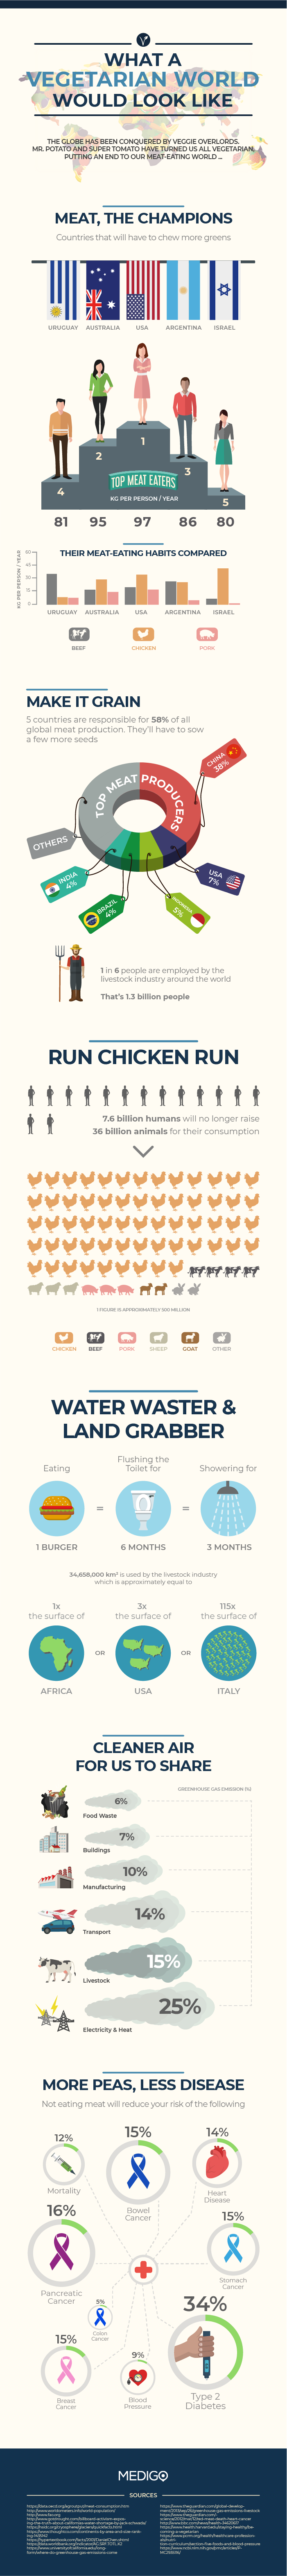 Would Our World Be Healthier If We Stopped Consuming Meat? - Infographic